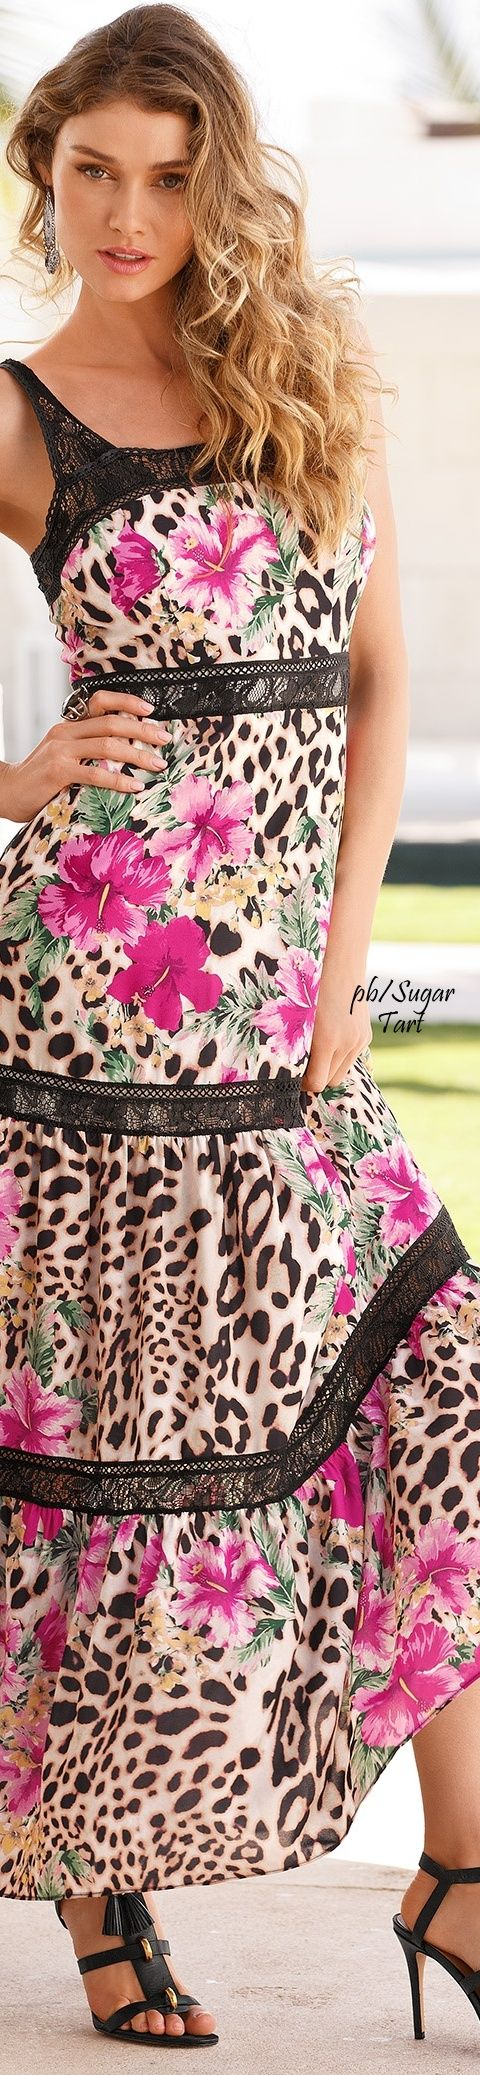 Animal print & floral summer maxi  dress